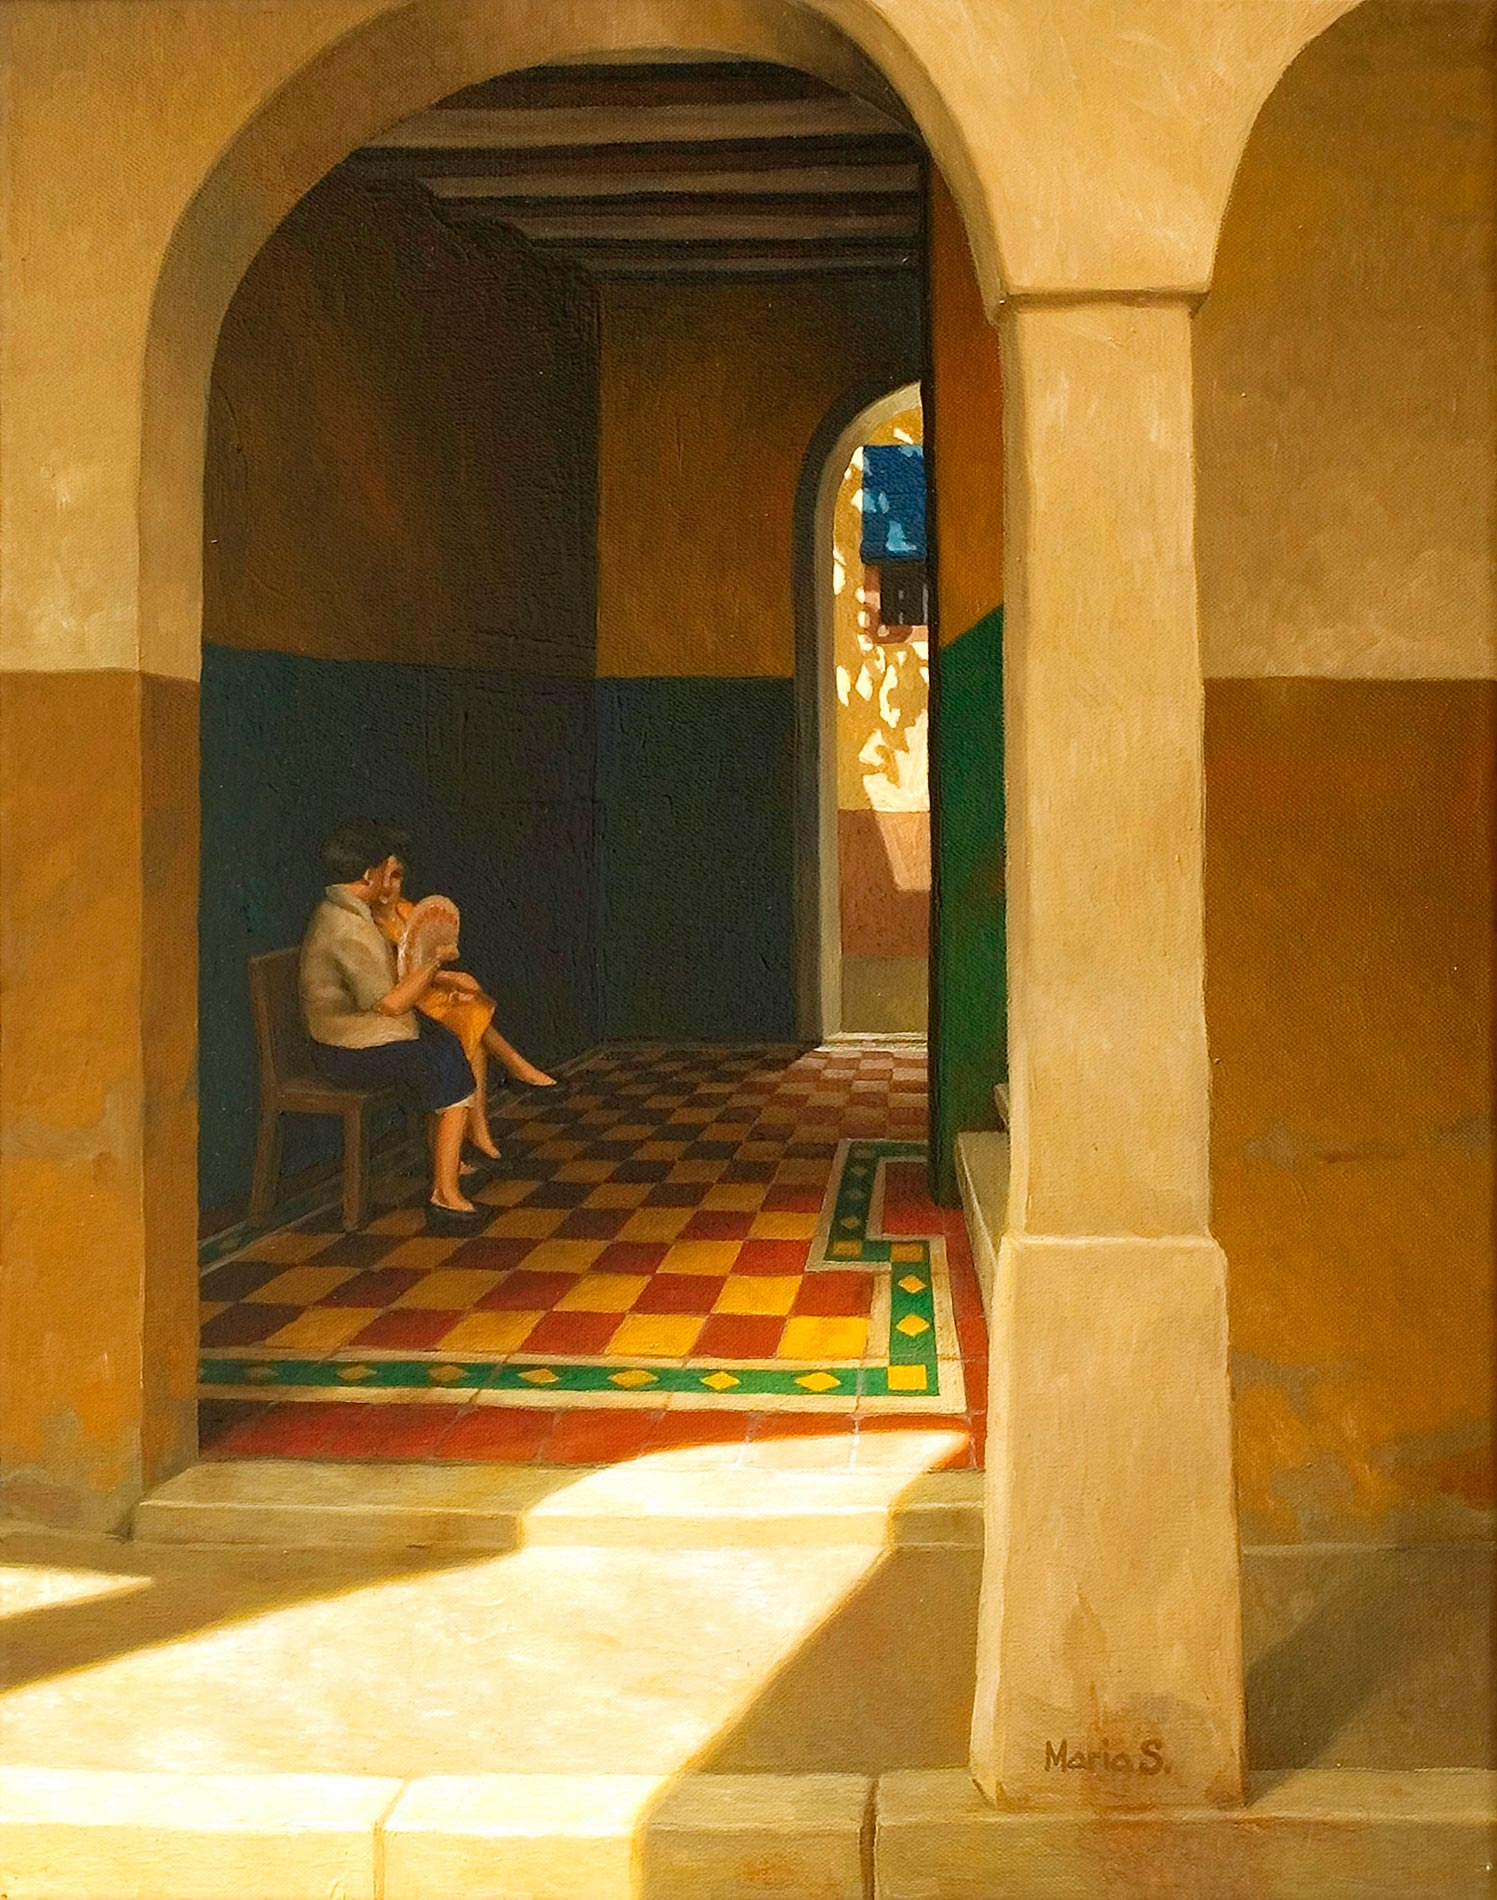 Conversation in the shade